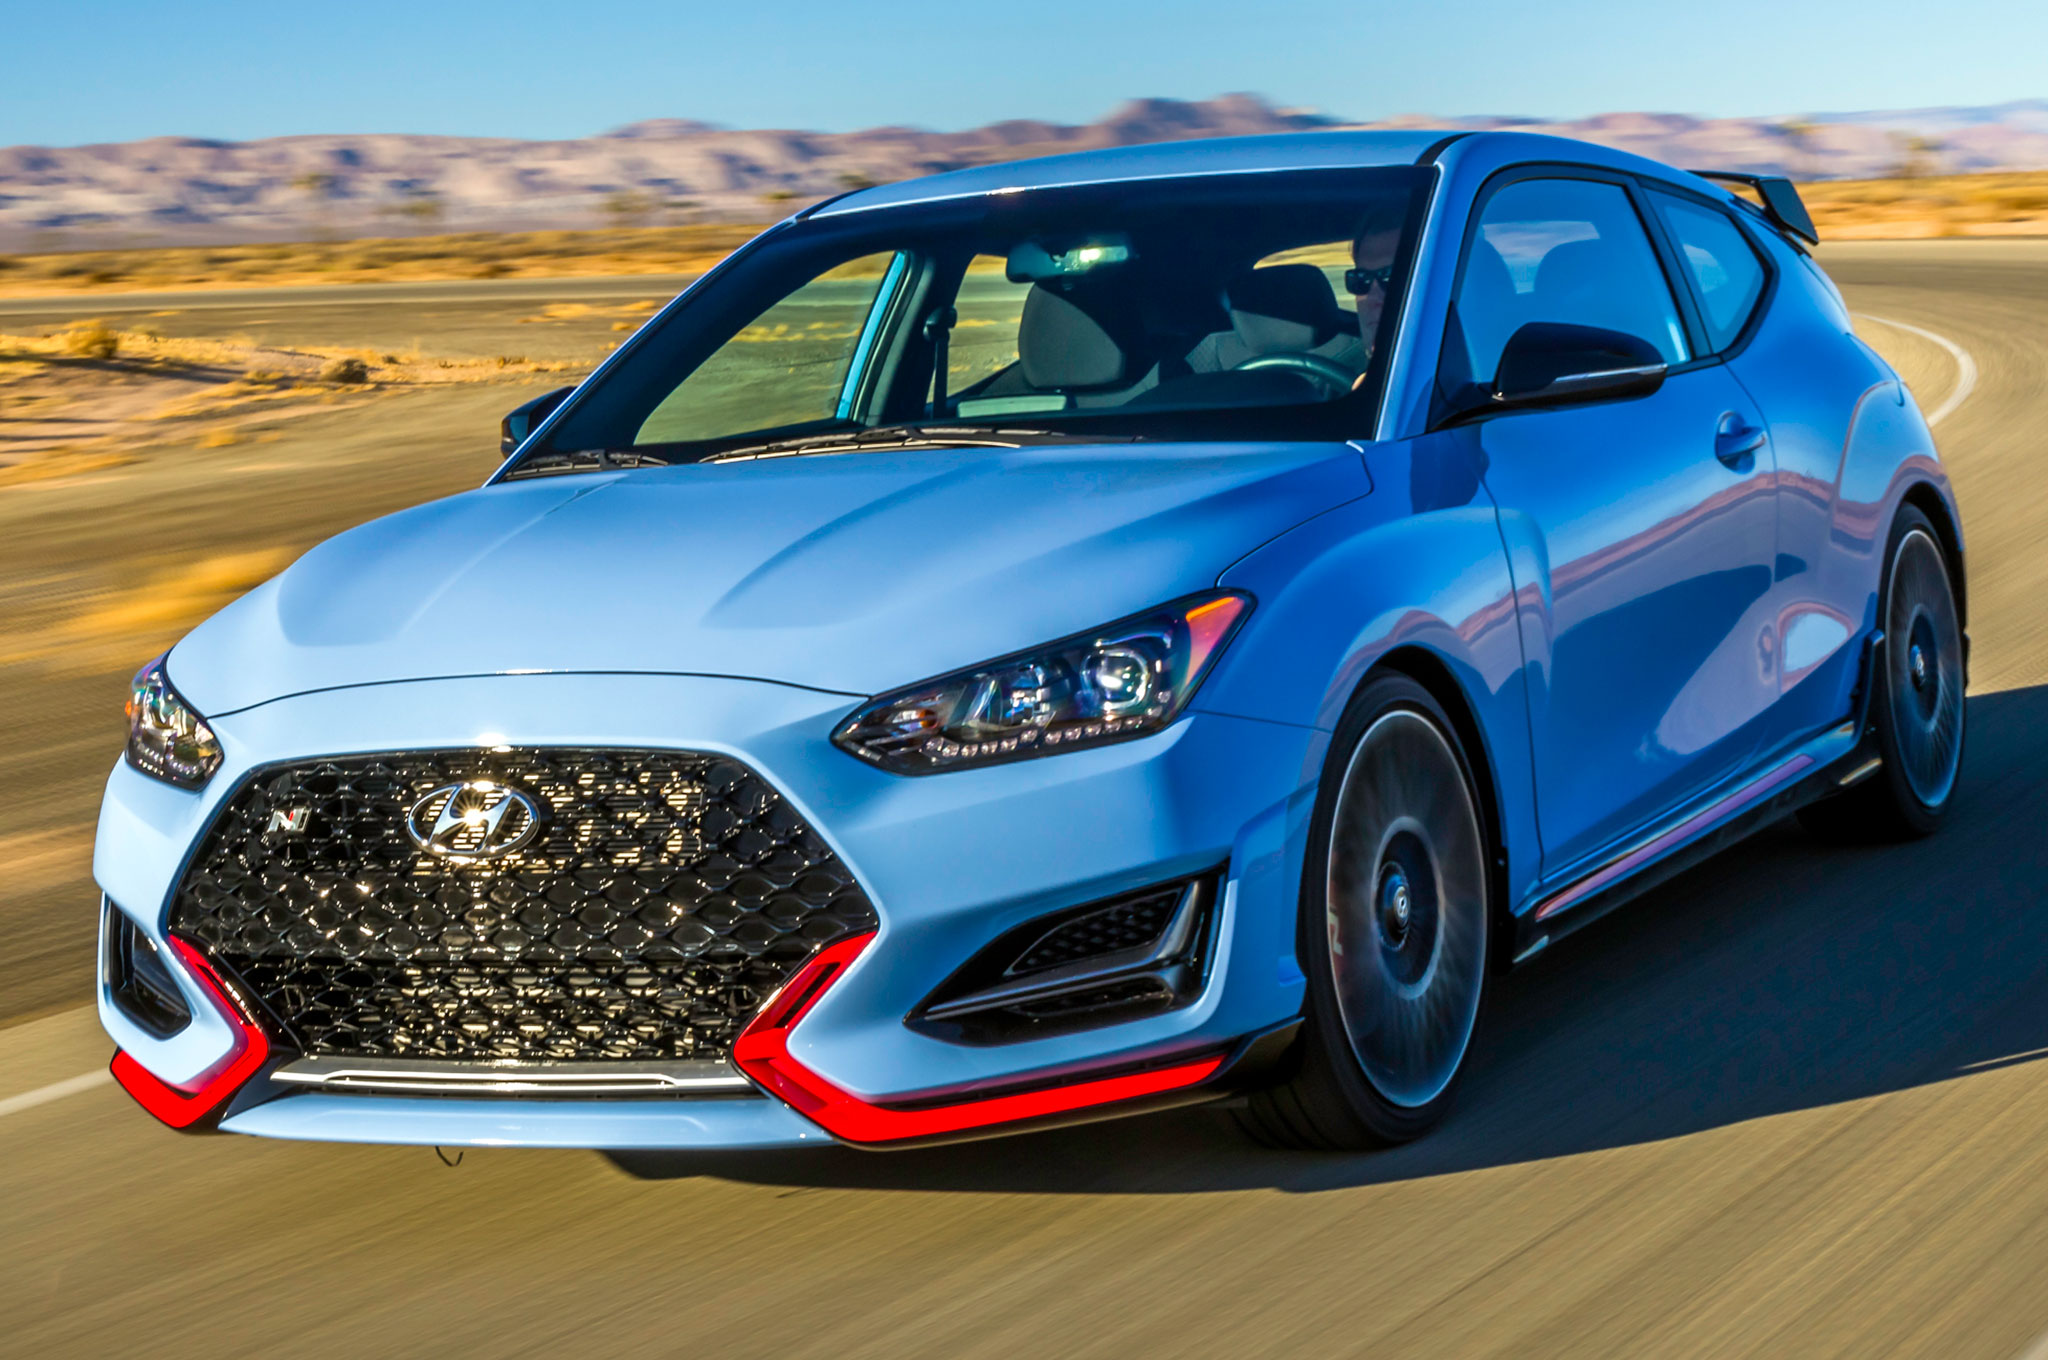 2019 Hyundai Veloster N Is The Brand S First Hot Hatch Bound For The